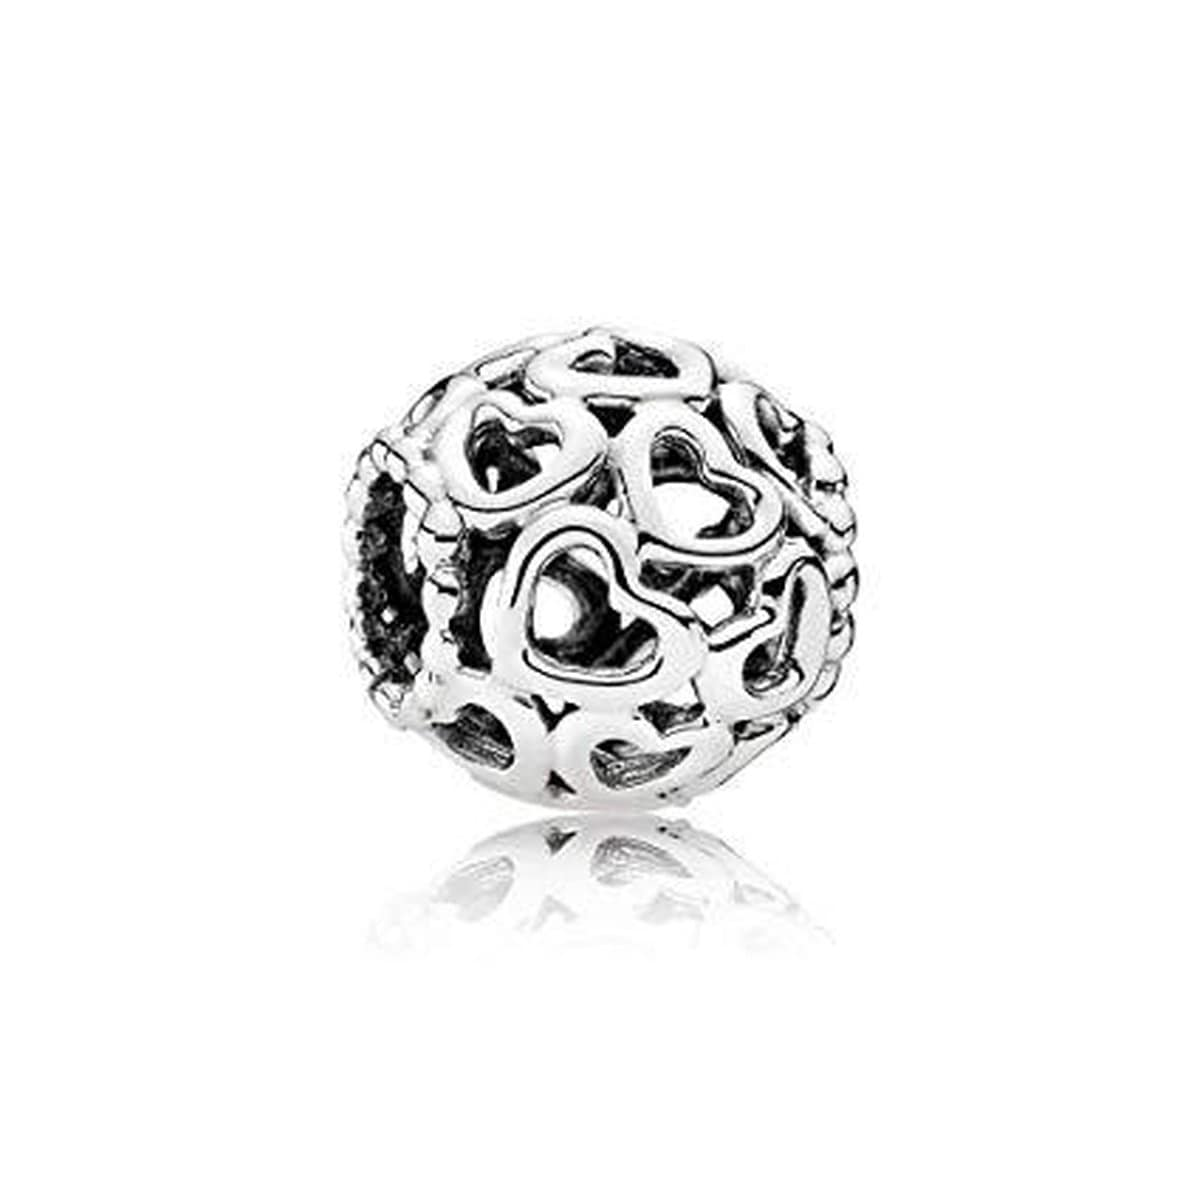 Open Your Heart Sterling Silver Charm - 790964-Pandora-Renee Taylor Gallery